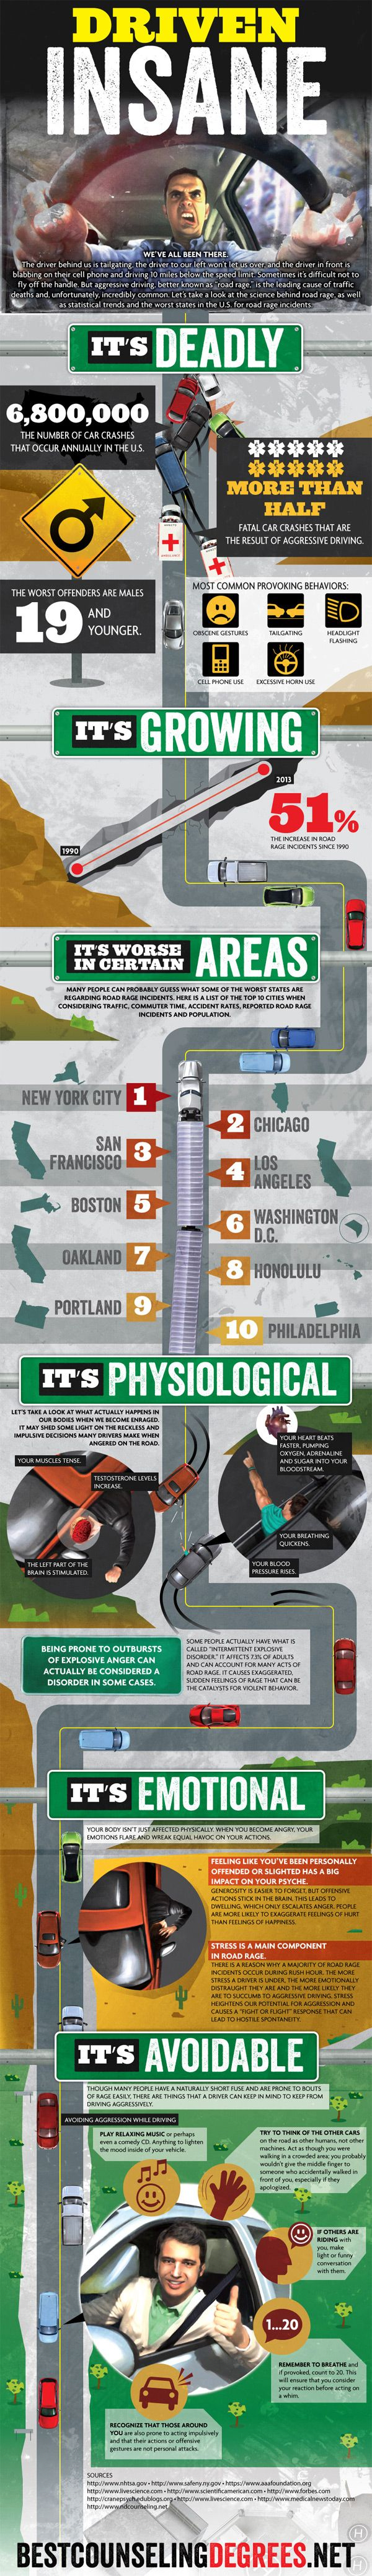 best psychology on the road images driving  aggressive driving statistics infographics mania aggressive drivingroad ragedriving